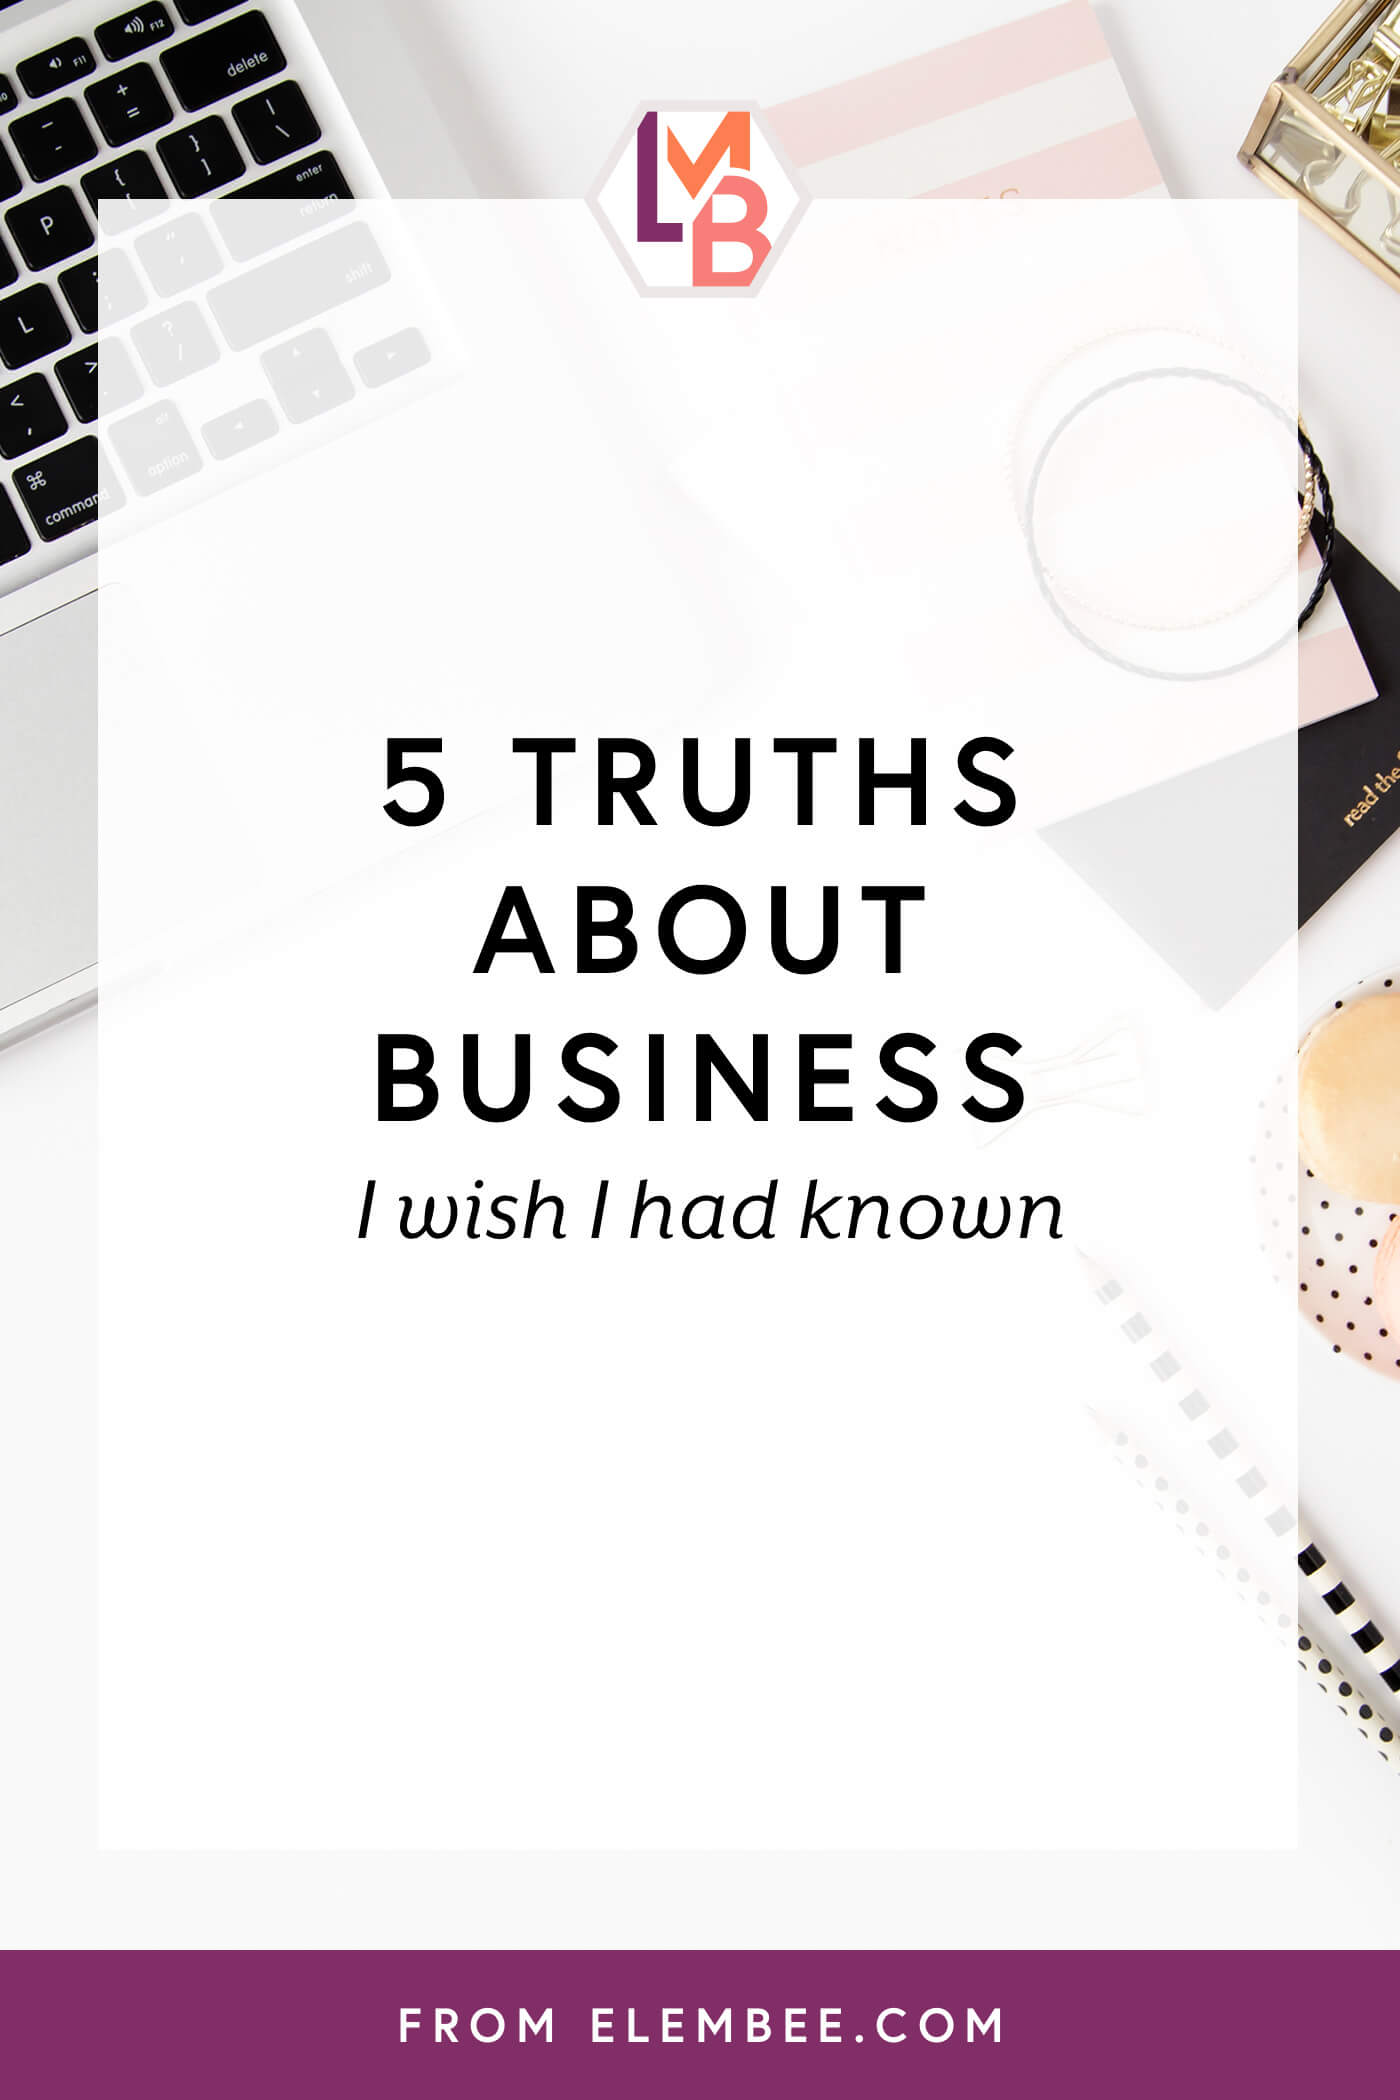 5 truths about business